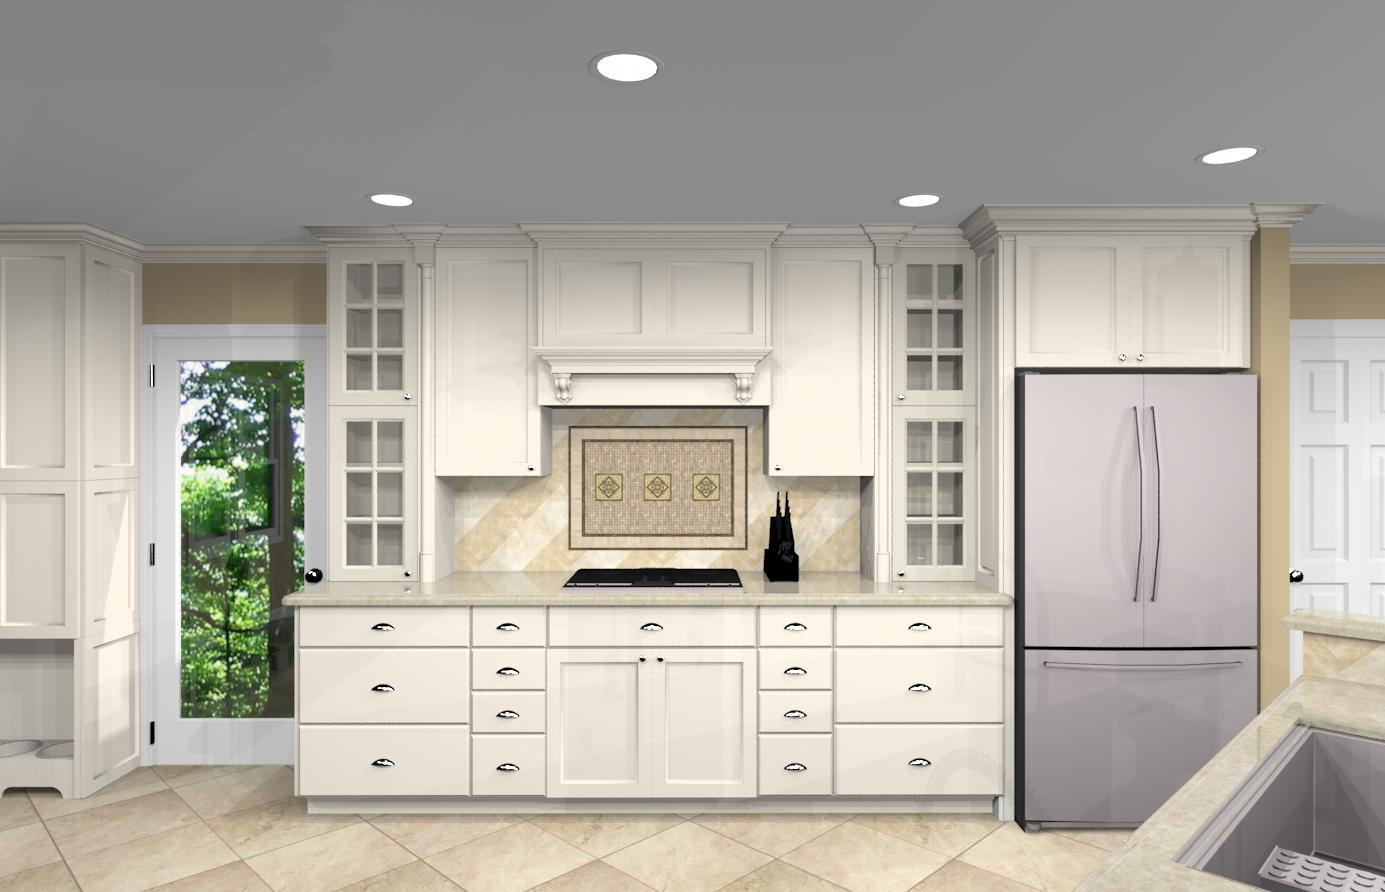 Kitchen Plans Kitchen Remodeling Design With Open Floor Plan In Watchung